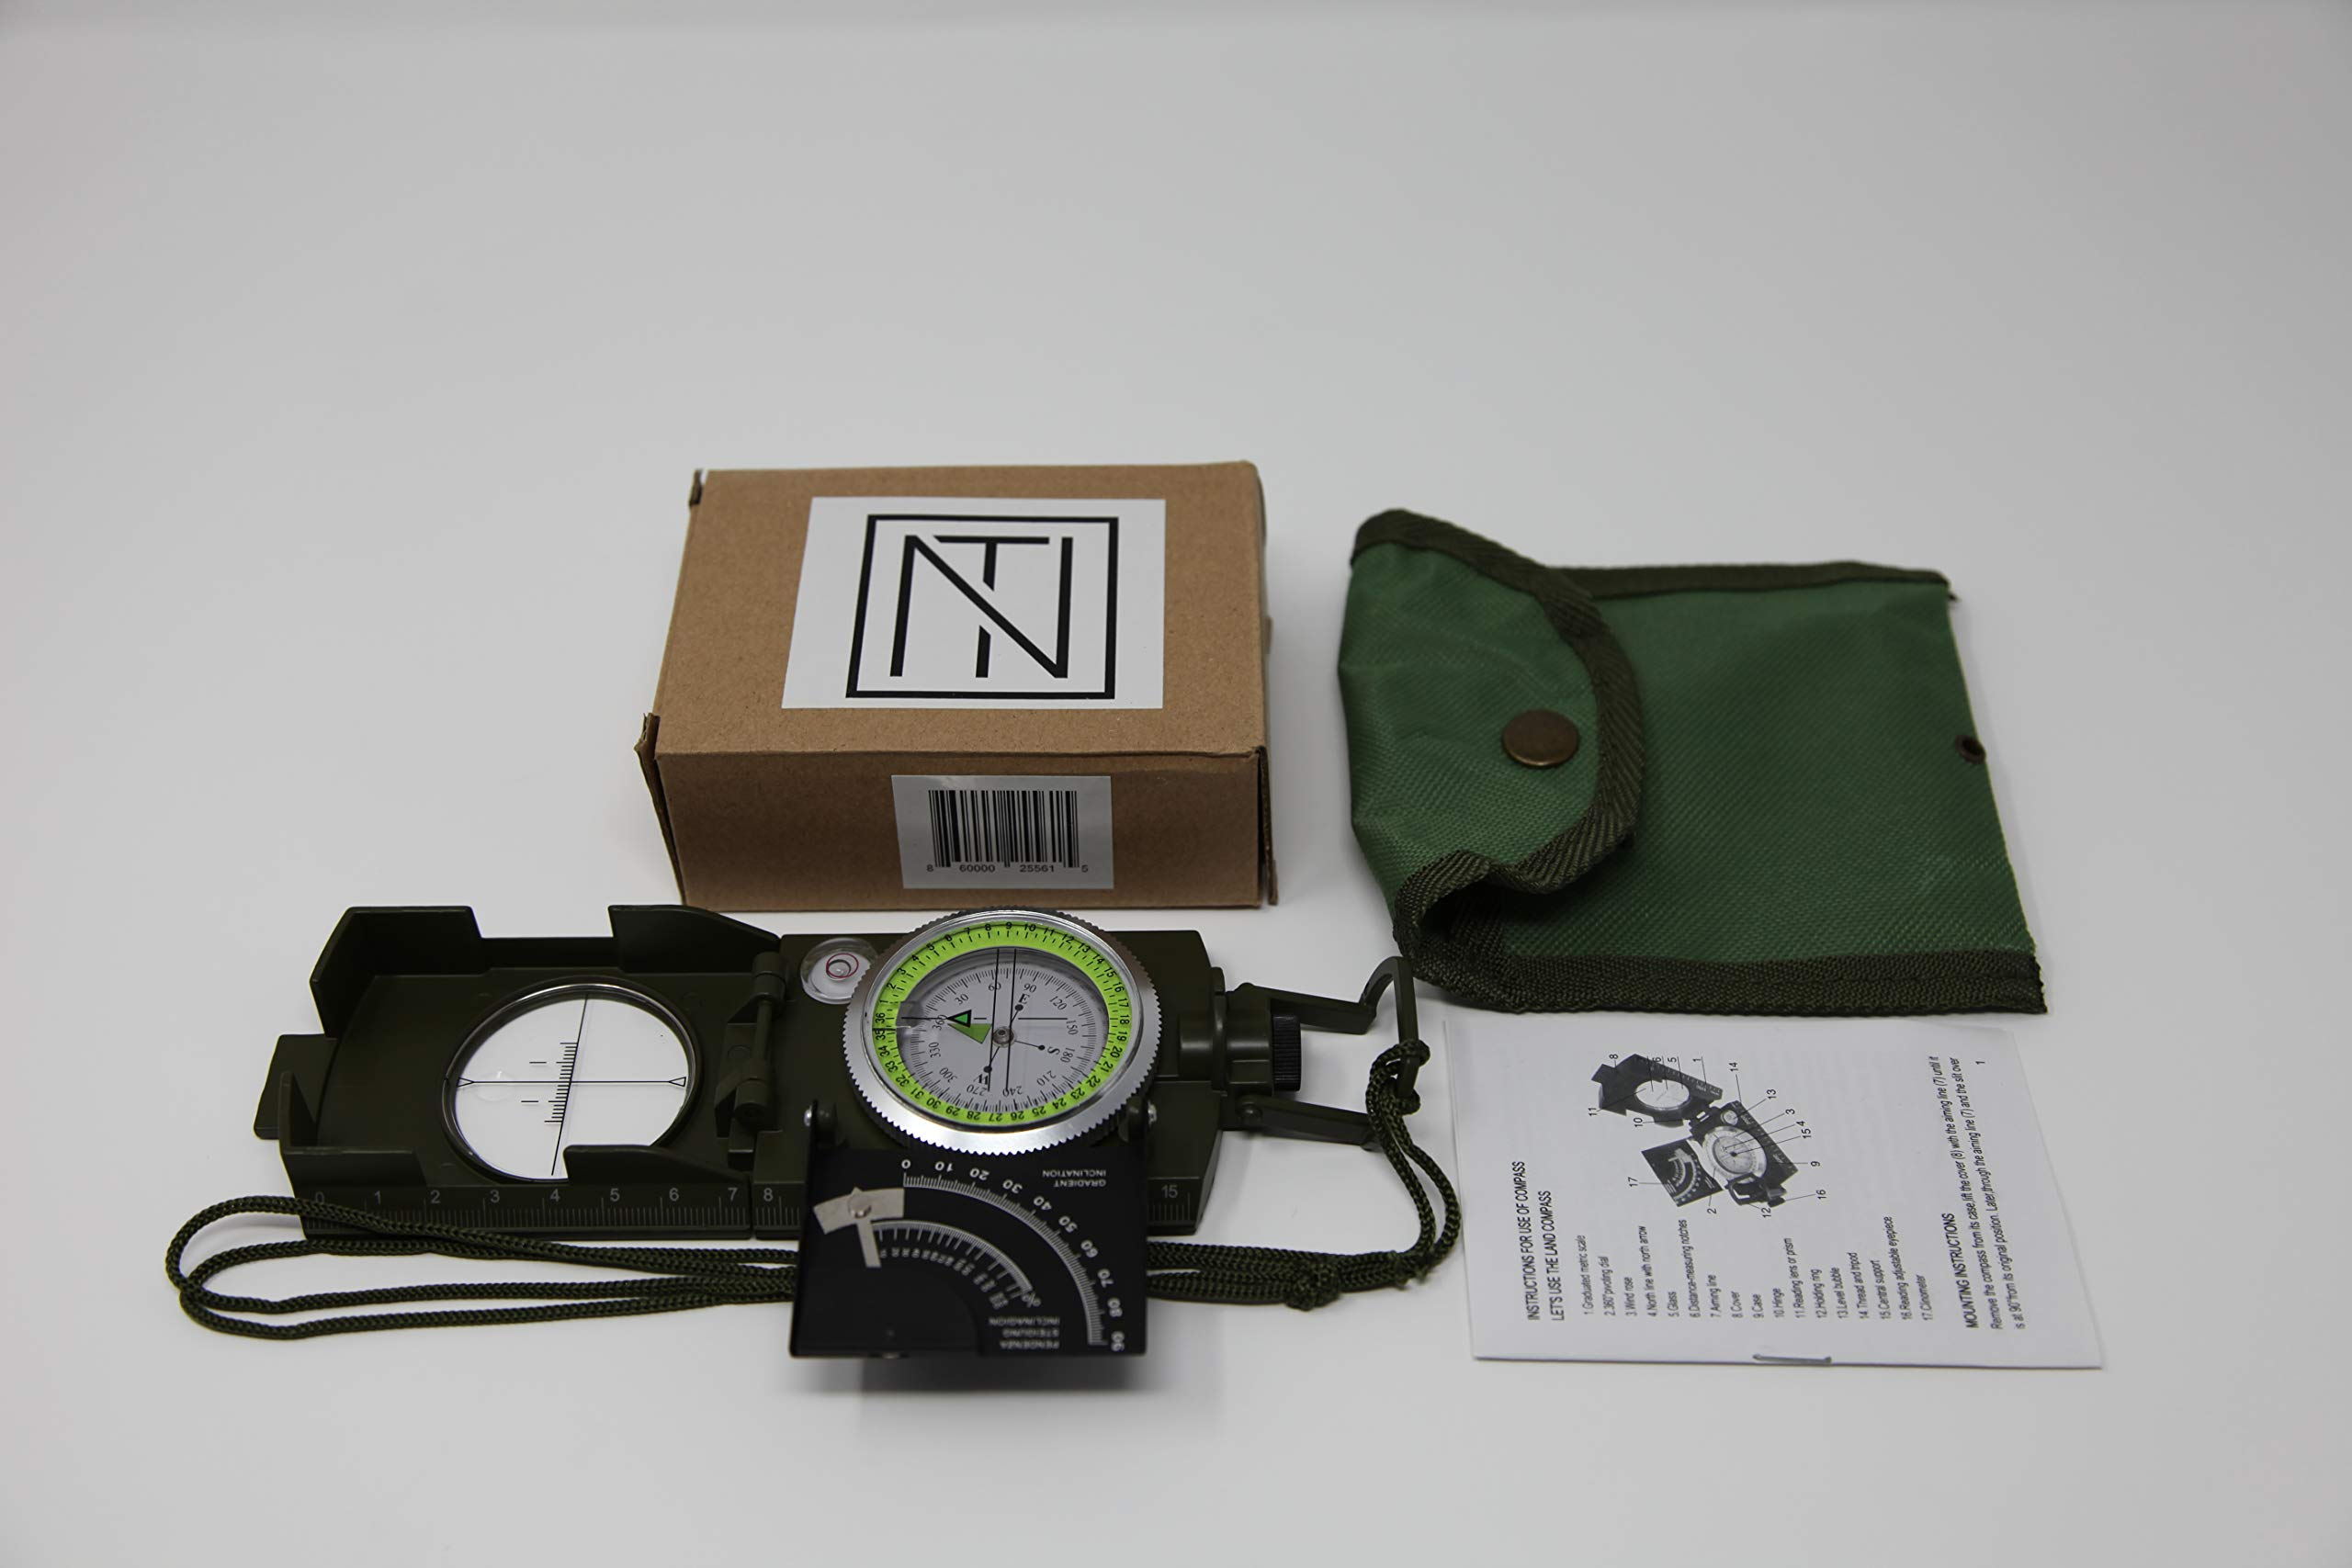 NT Multifunctional Military Lensatic Sighting Compass with Inclinometer and Carrying Bag and Waterproof by NT